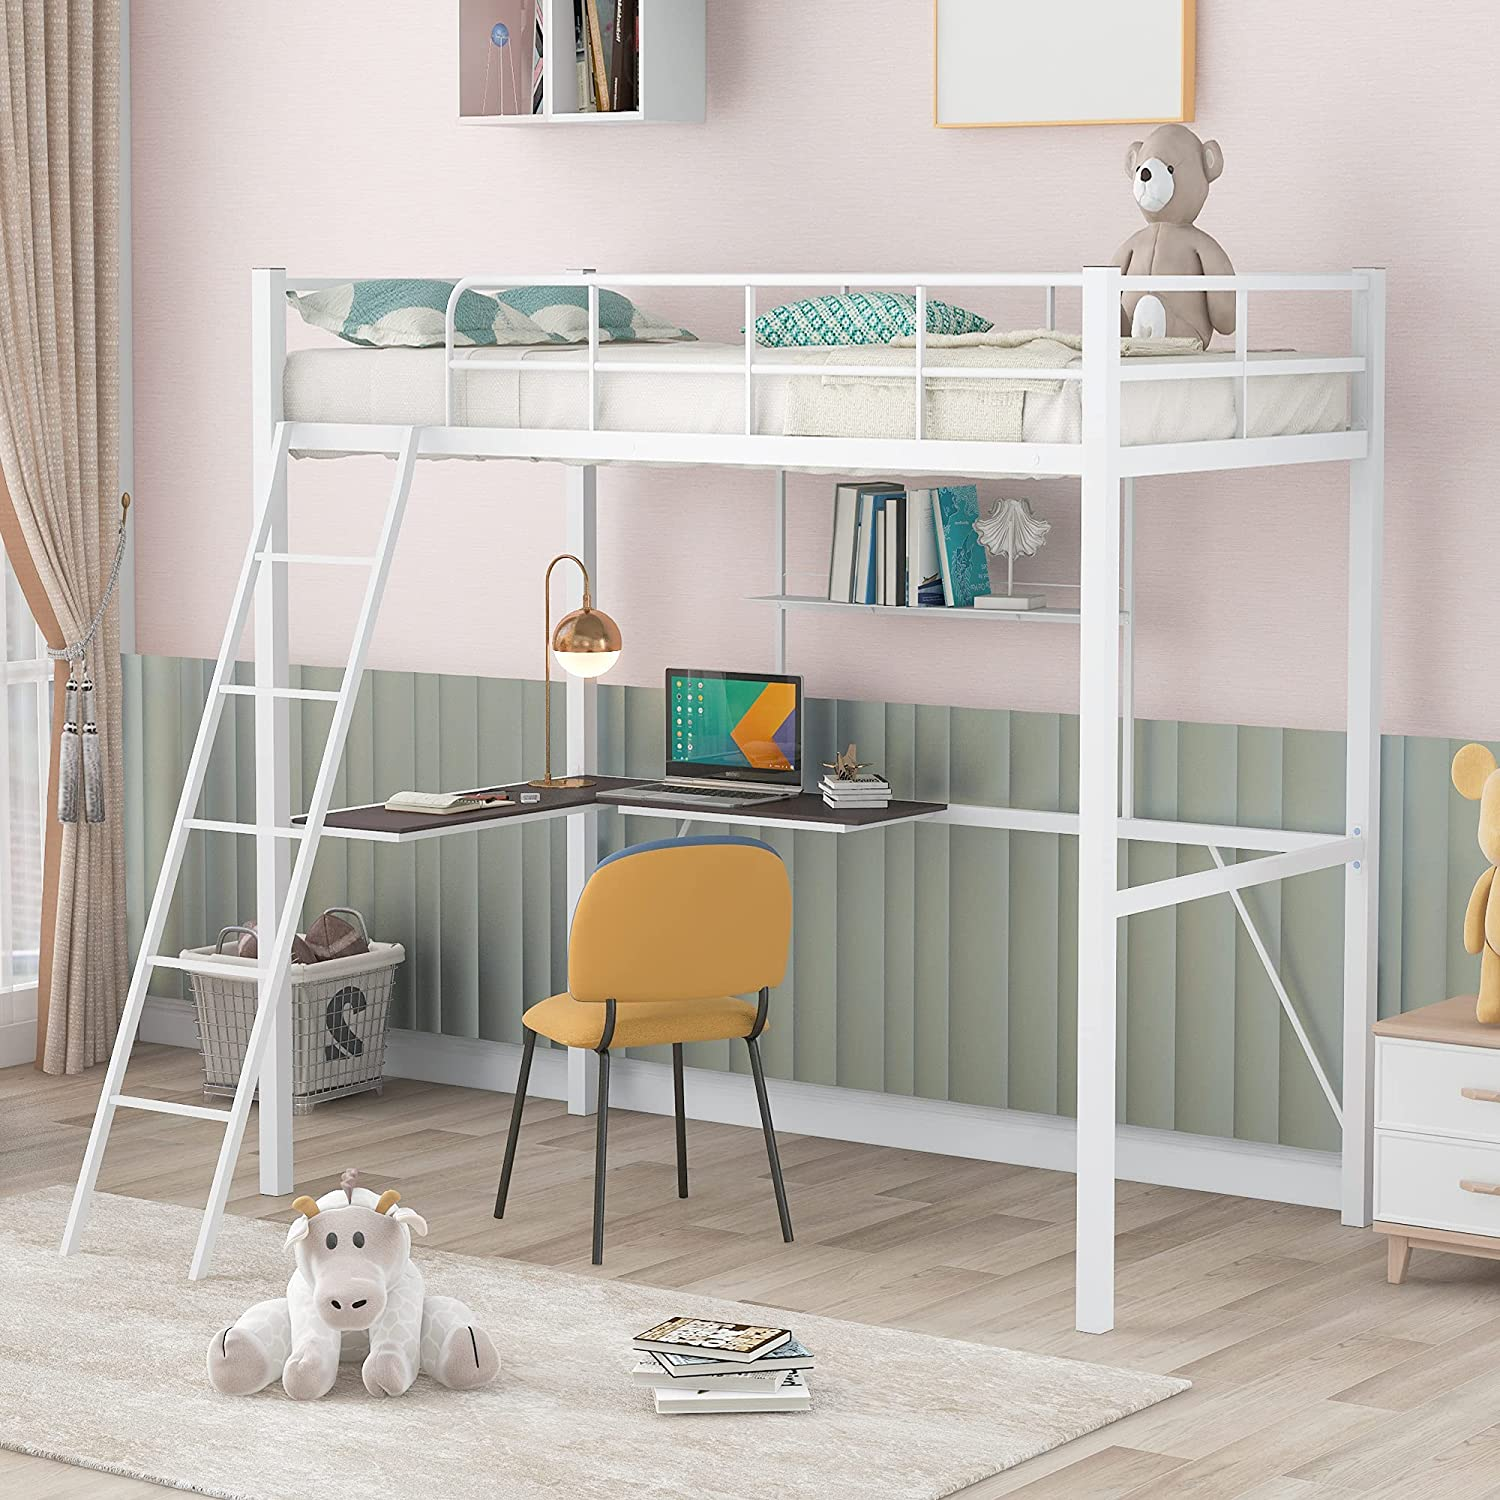 P PURLOVE Twin Size アイテム勢ぞろい Loft Bed High and Desk Shelf H 年末年始大決算 with